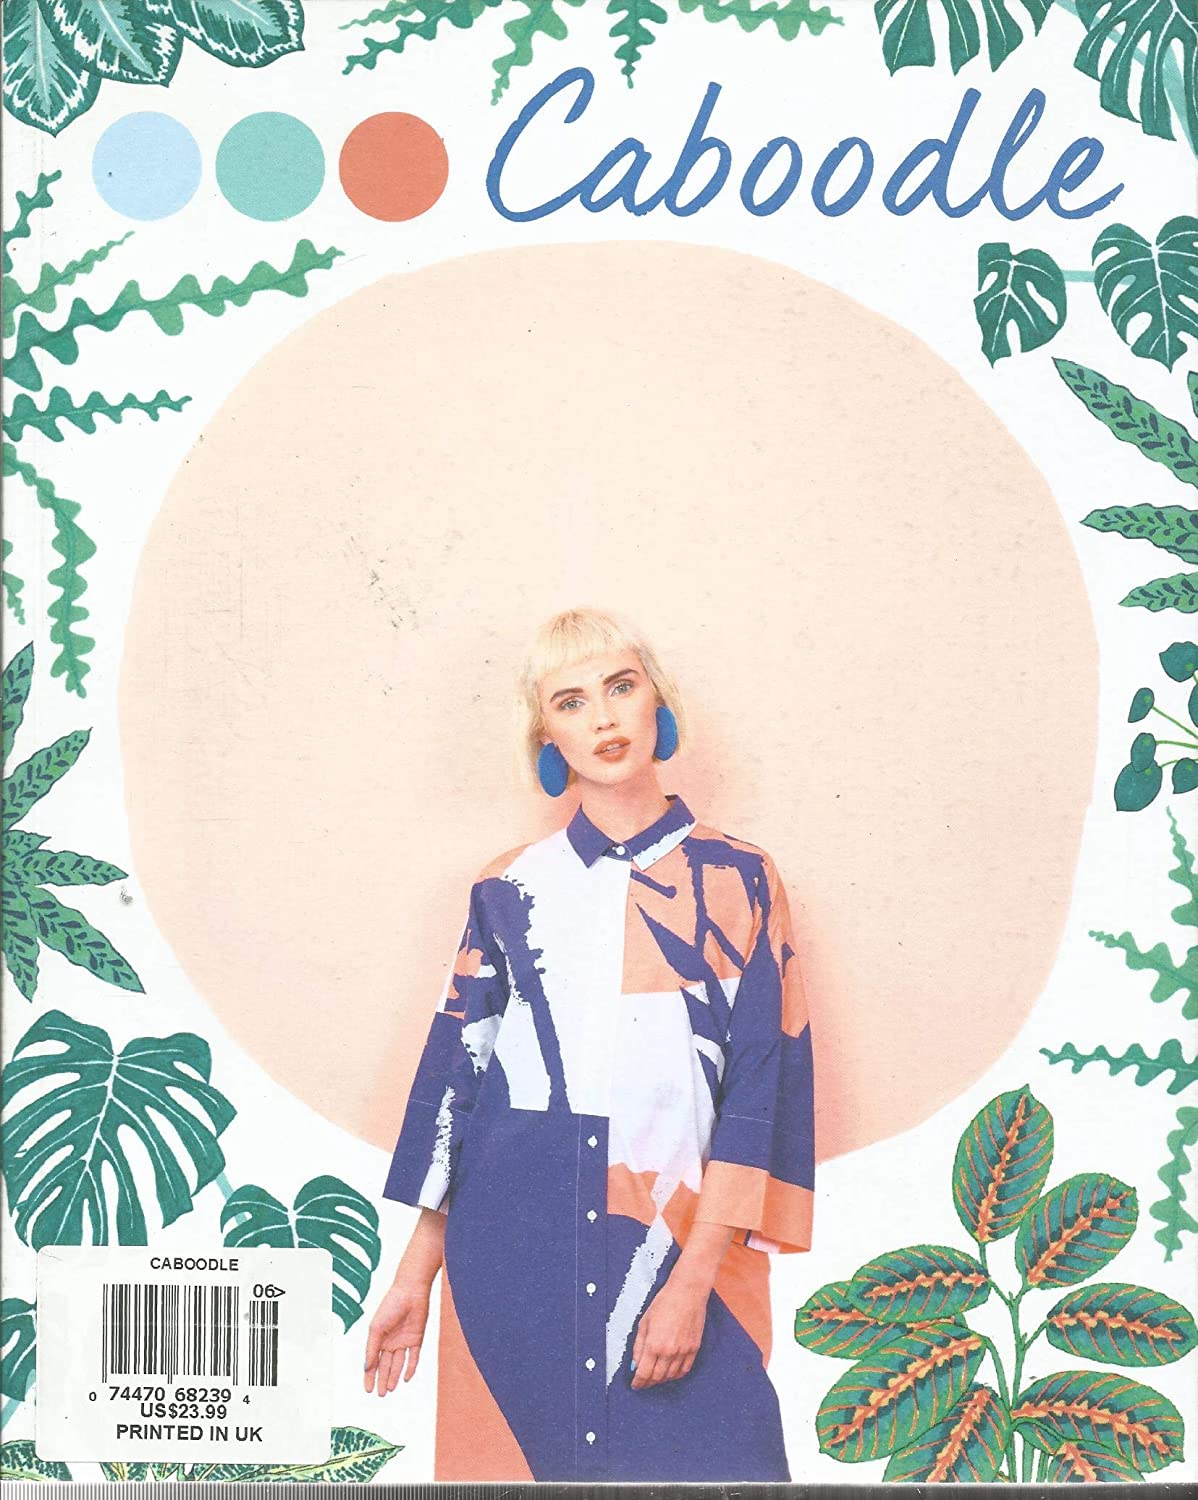 CABOODLE Austin Mall MAGAZINE Directly managed store KAYTI PESCHKR ISSUE UK IN PLEASE PRINTED 06